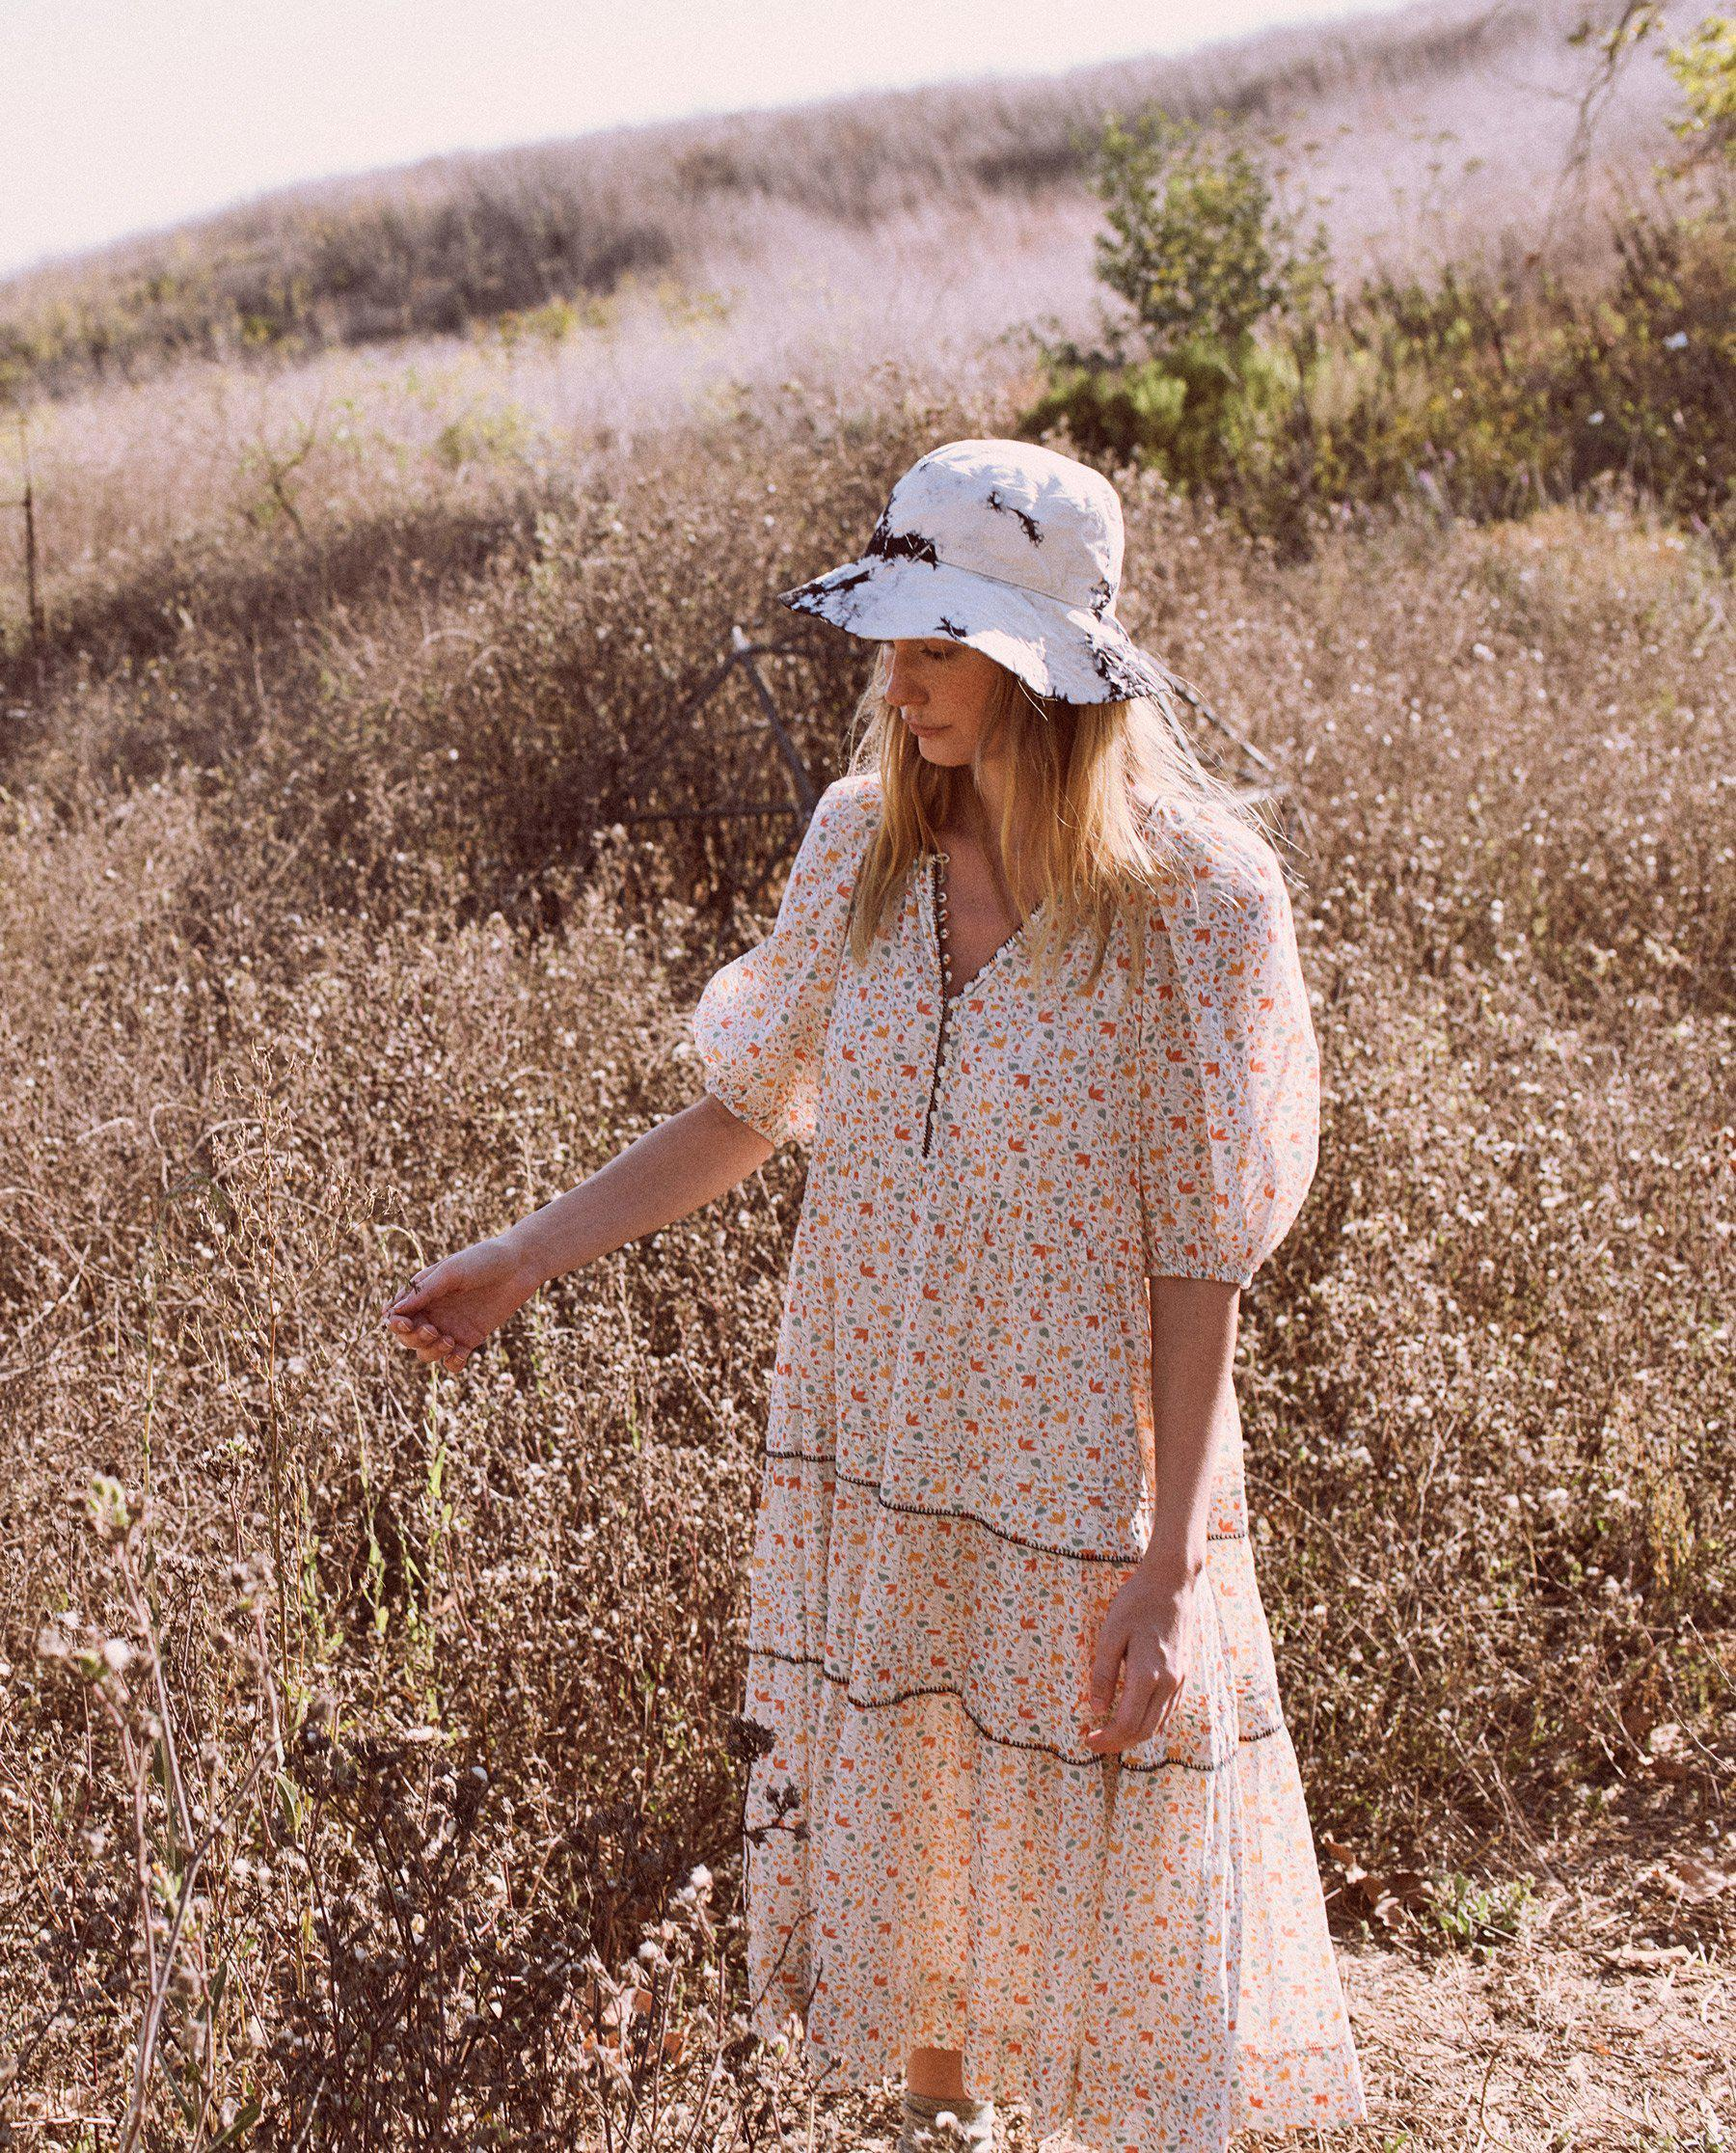 The Whip Stitched Ravine Dress. -- Pastel Floral